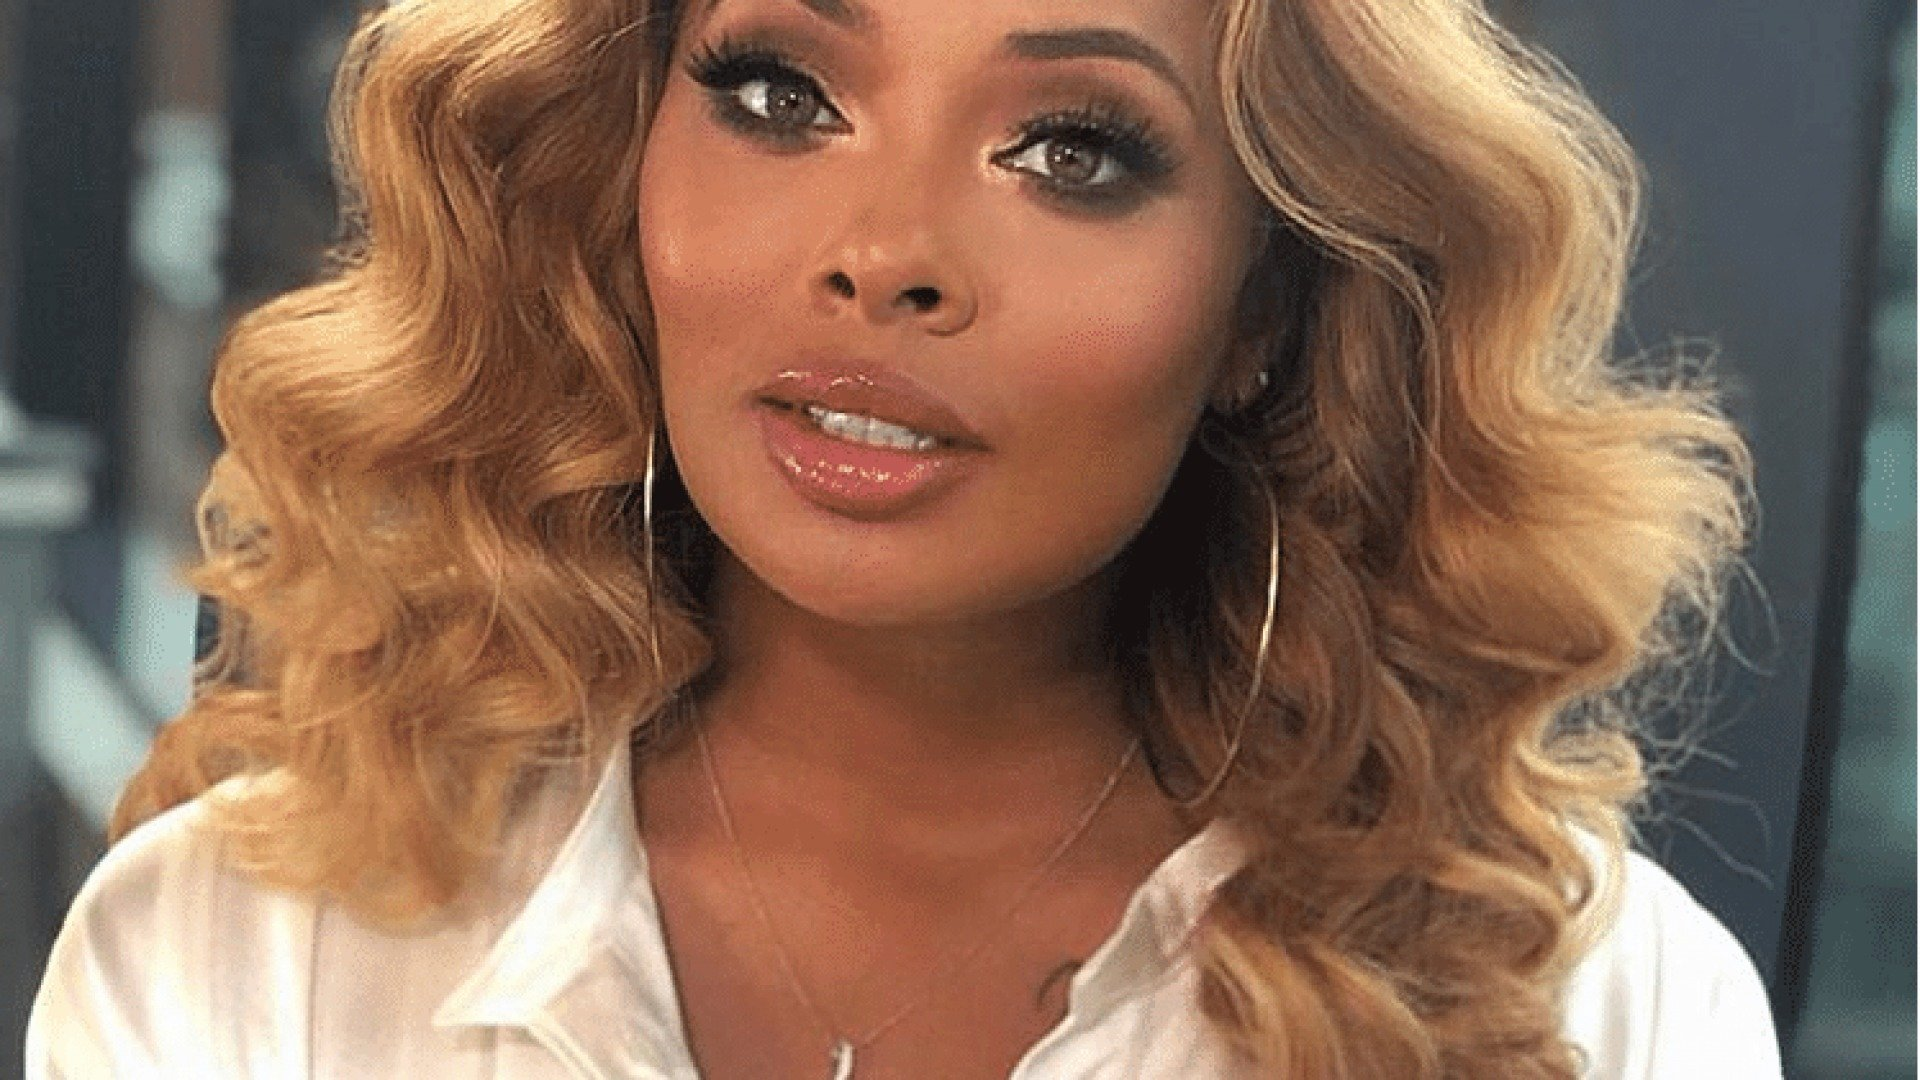 Eva Marcille Continues To Ask For Justice For Breonna Taylor